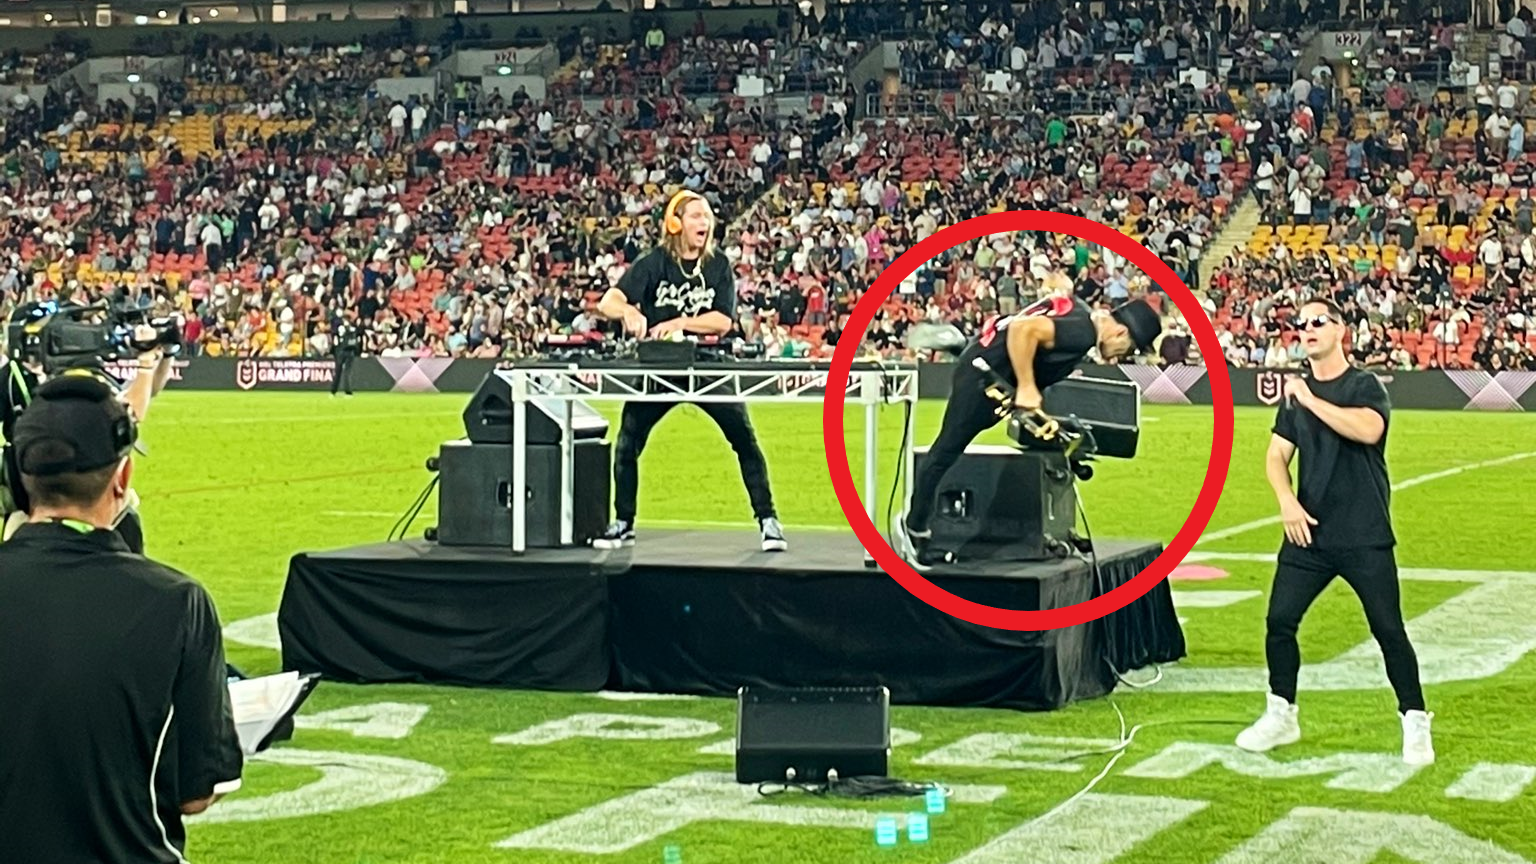 NRL grand final entertainment goes bad as Timmy Trumpet tumbles off stage at half time